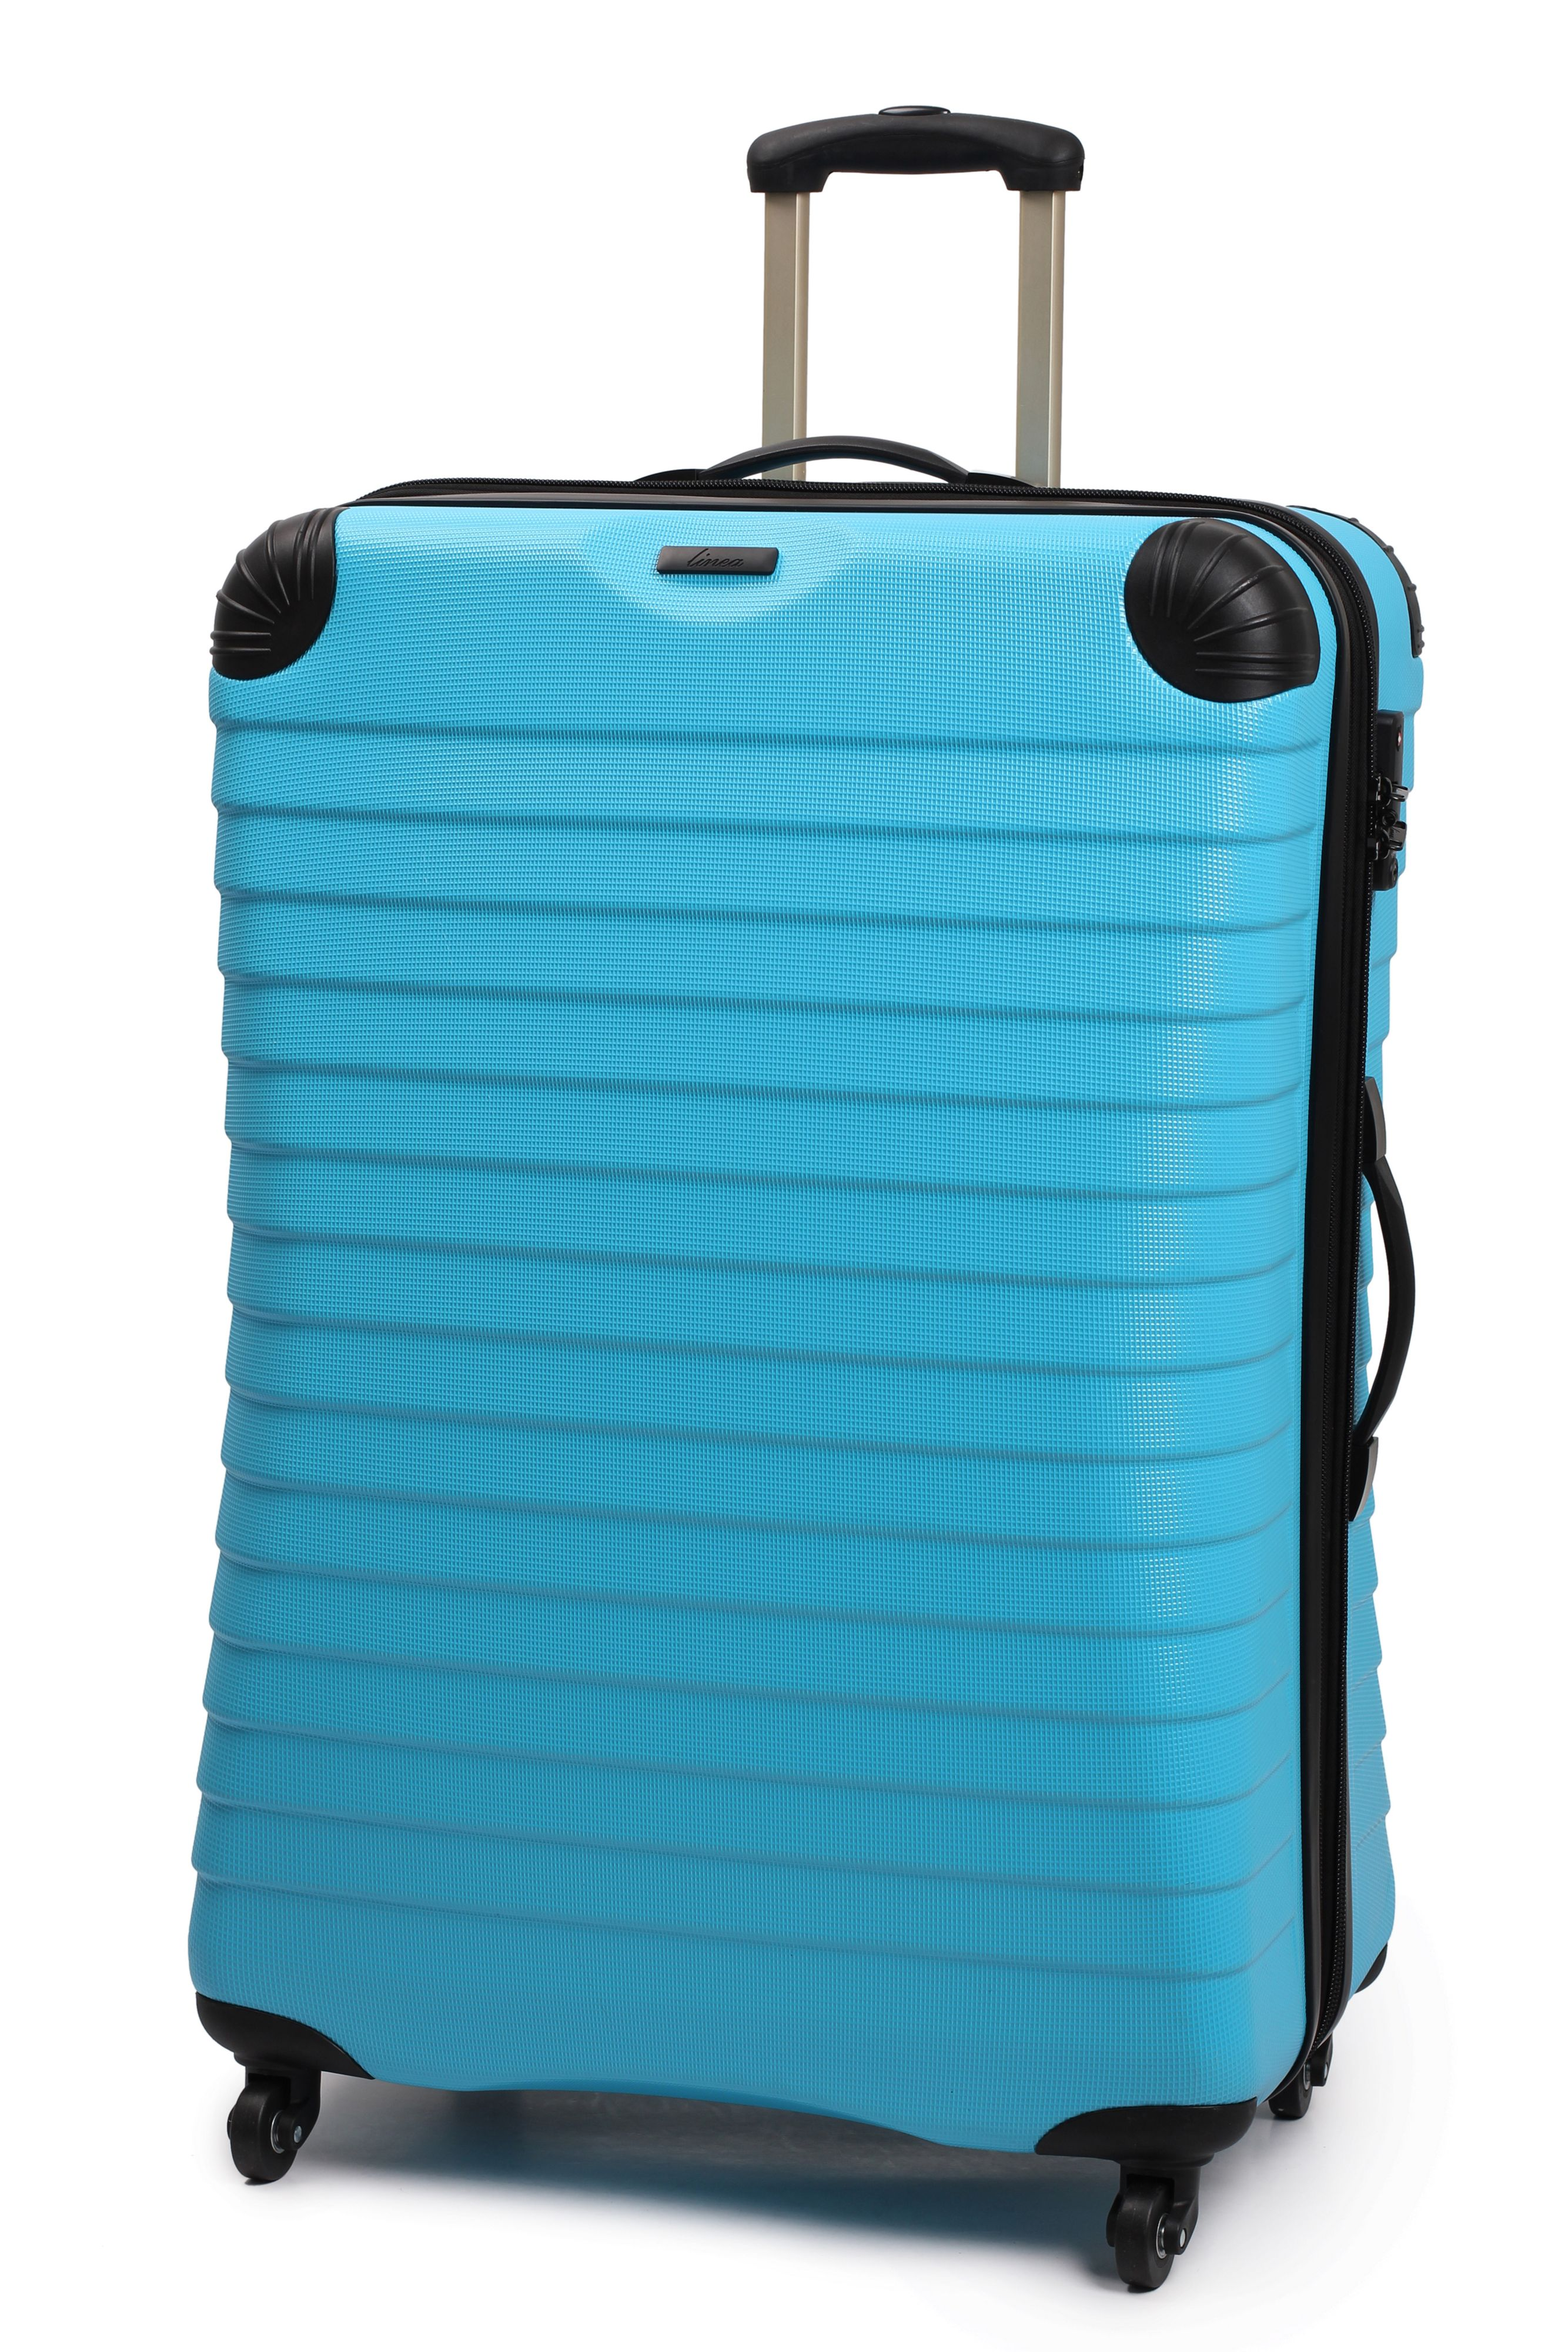 Linea Shell aqua 4 wheel hard large case Aqua